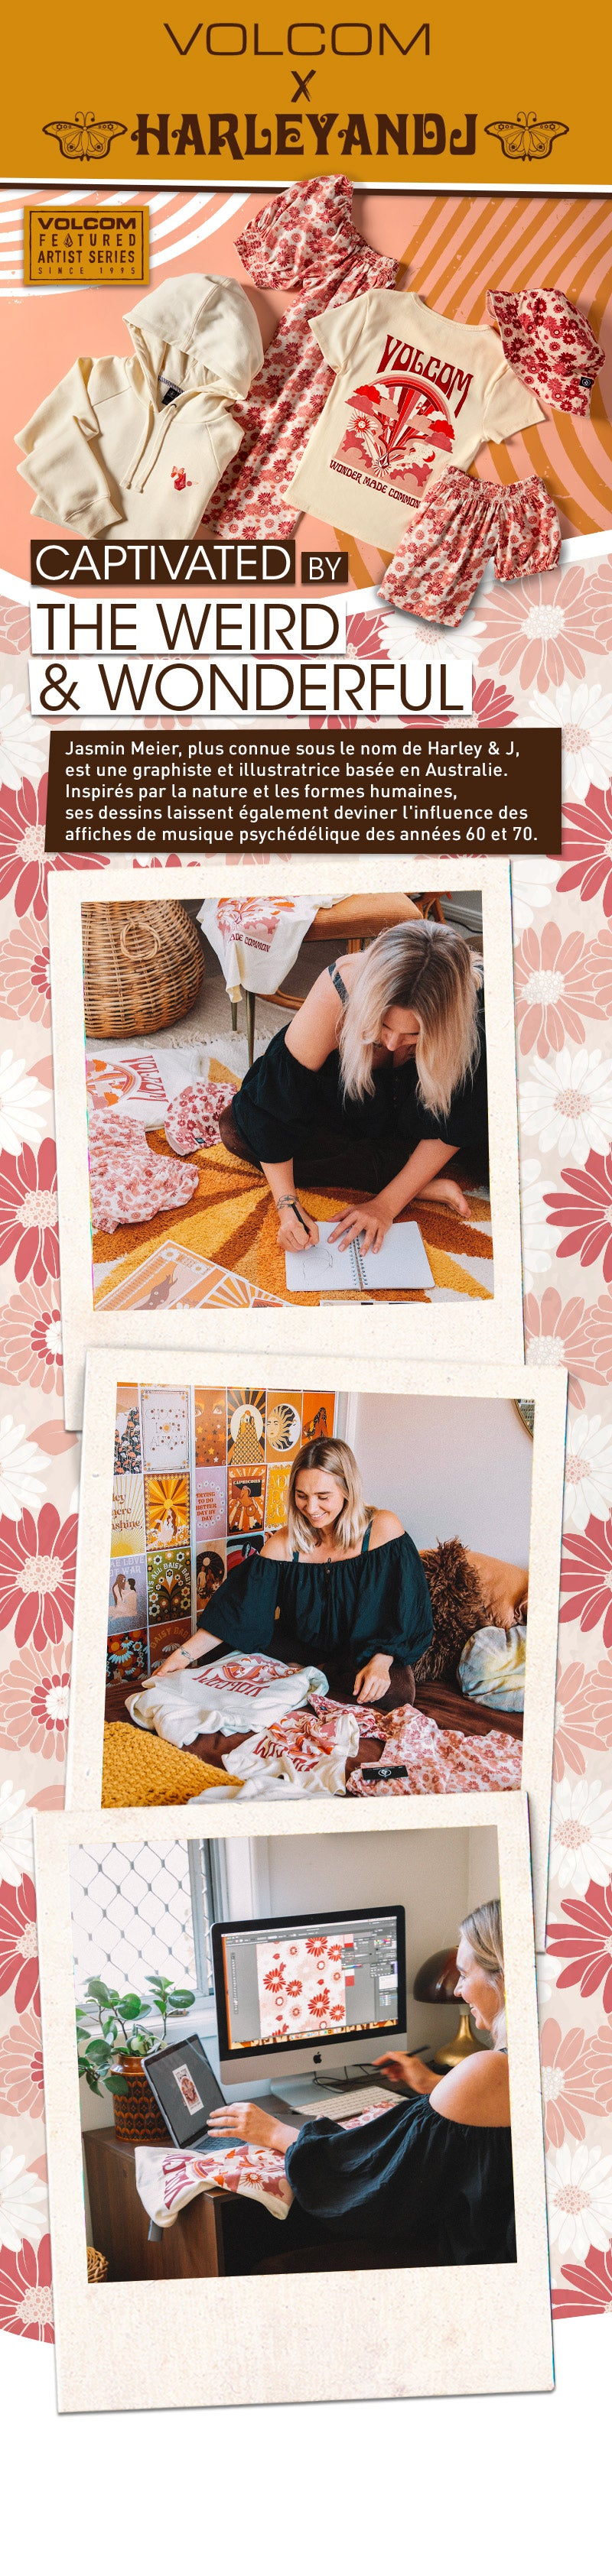 Harley And J X Volcom Captivated By The Weird & Wonderful Jasmin Meier, better known as Harley & J, is an Australia based graphic designer & illustrator. Her designs are inspired by the natural world and human form, combined with 60's & 70's psychedelic music posters.